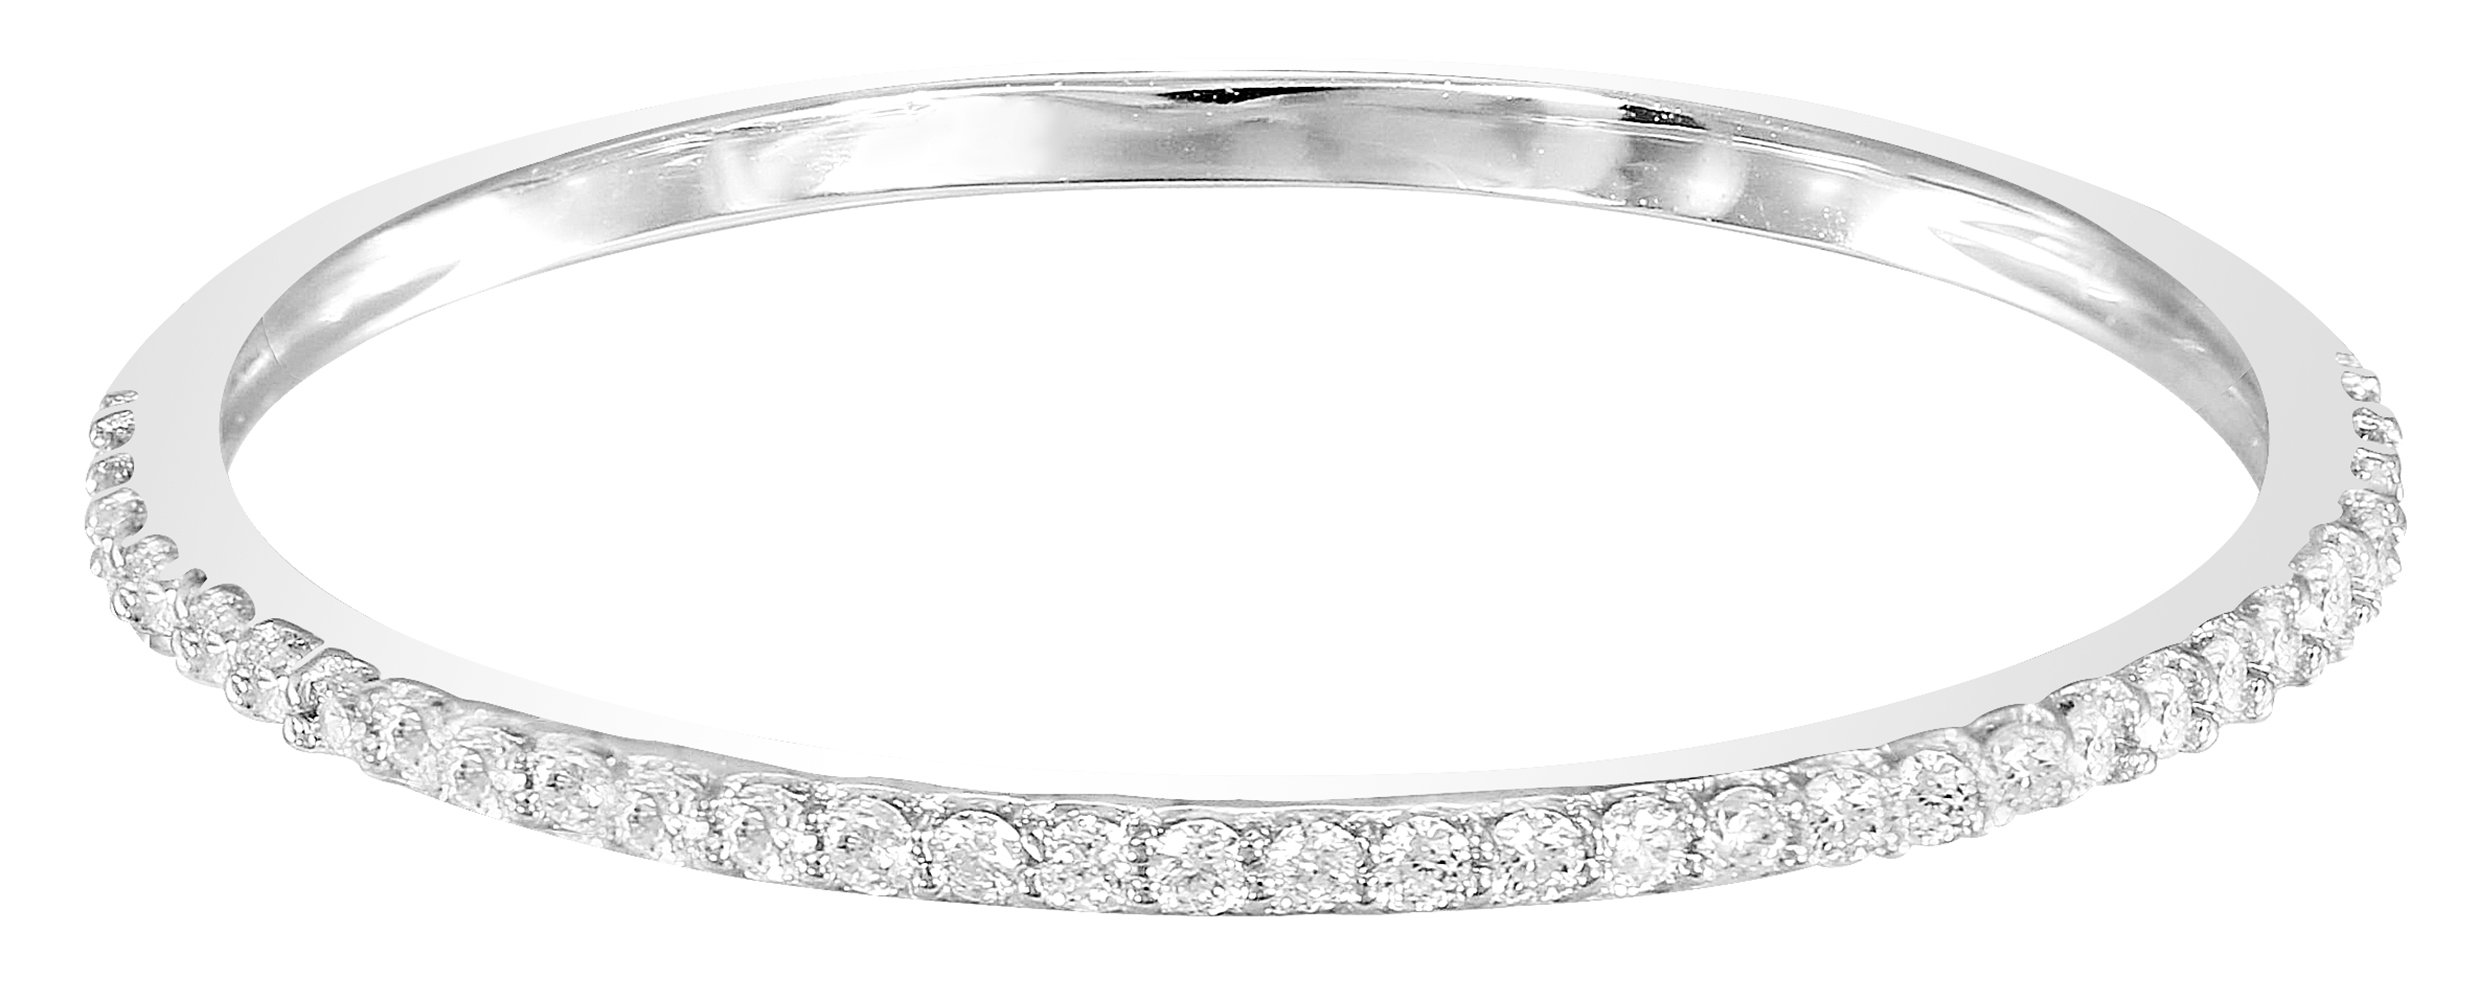 14k White Gold Dainty Half Band Natural Diamond Wedding Anniversary Ring (0.08 cttw, G-H Color) (Size 7)